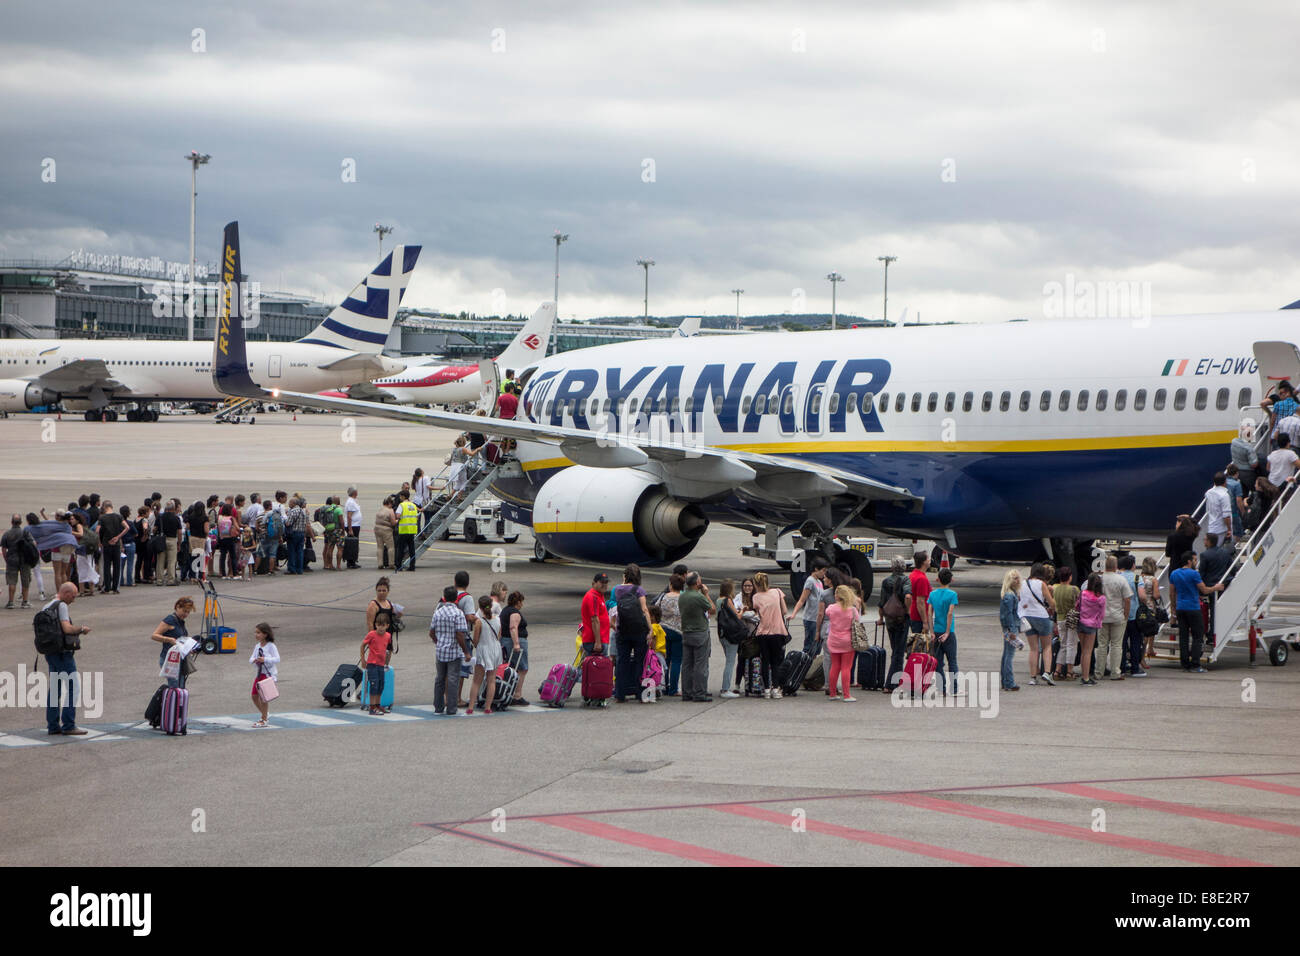 passengers line up to board Ryanair jet airliner on tarmac of airport in Marseilles in Provence South of France - Stock Image